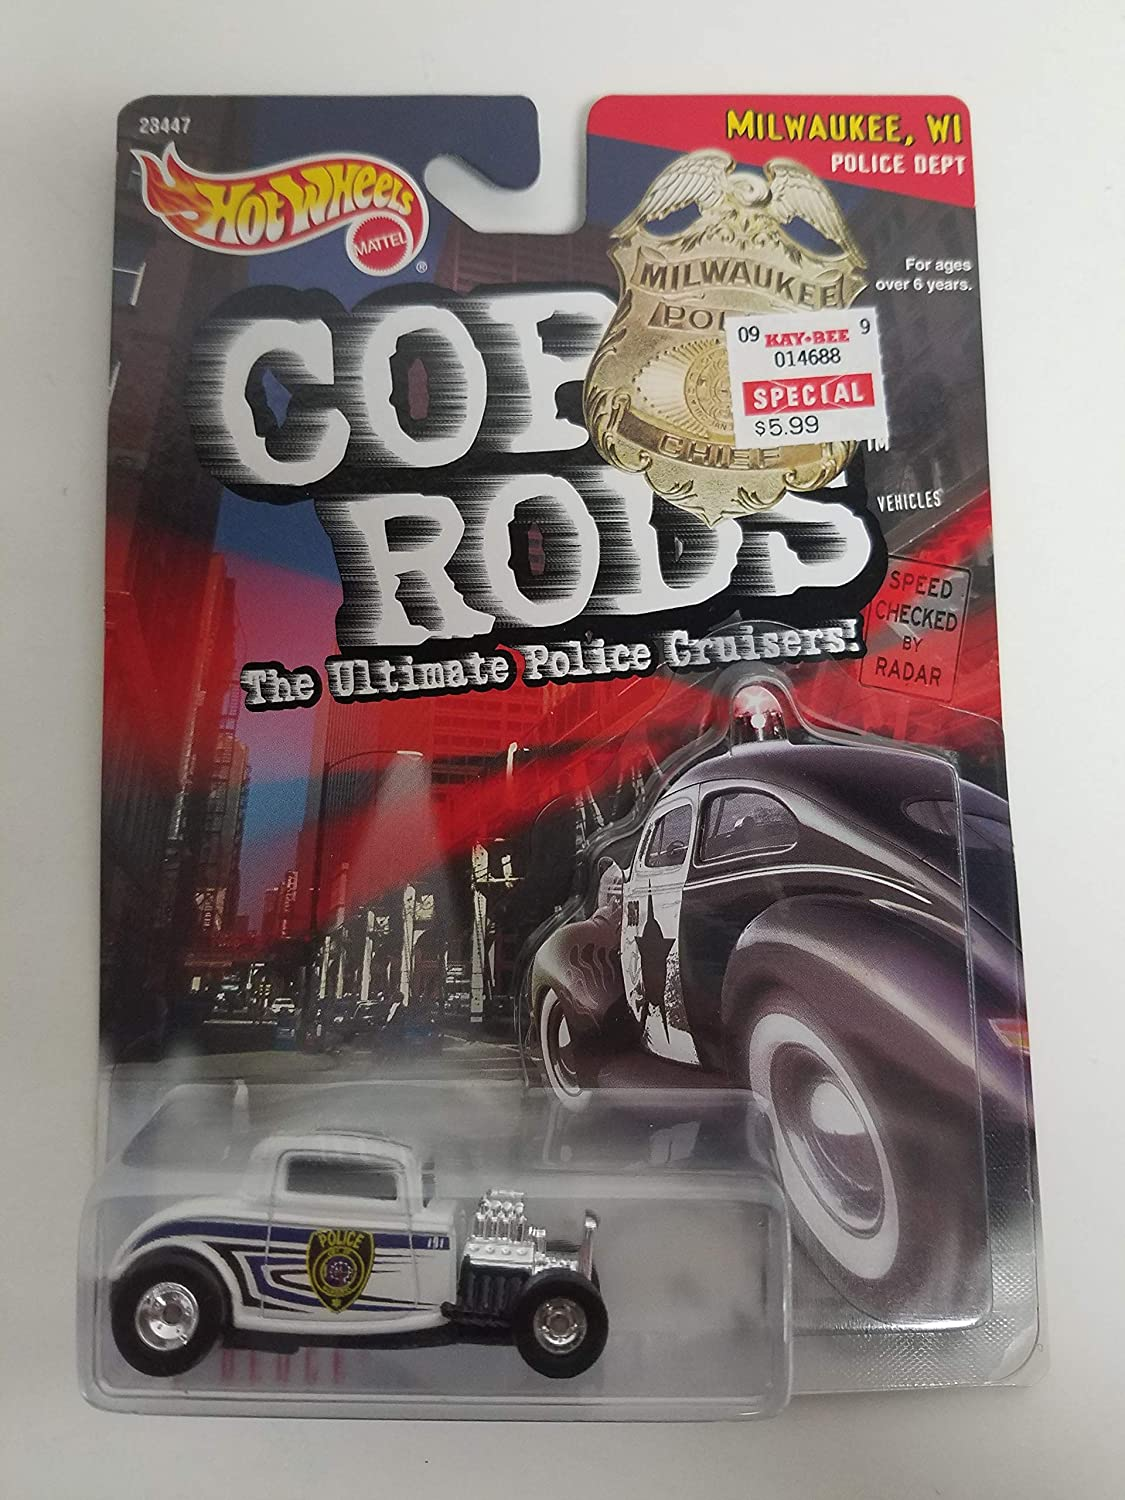 32 Duece 1999 Hot Wheels Cop Rods Milwaukee WI Police Department PD